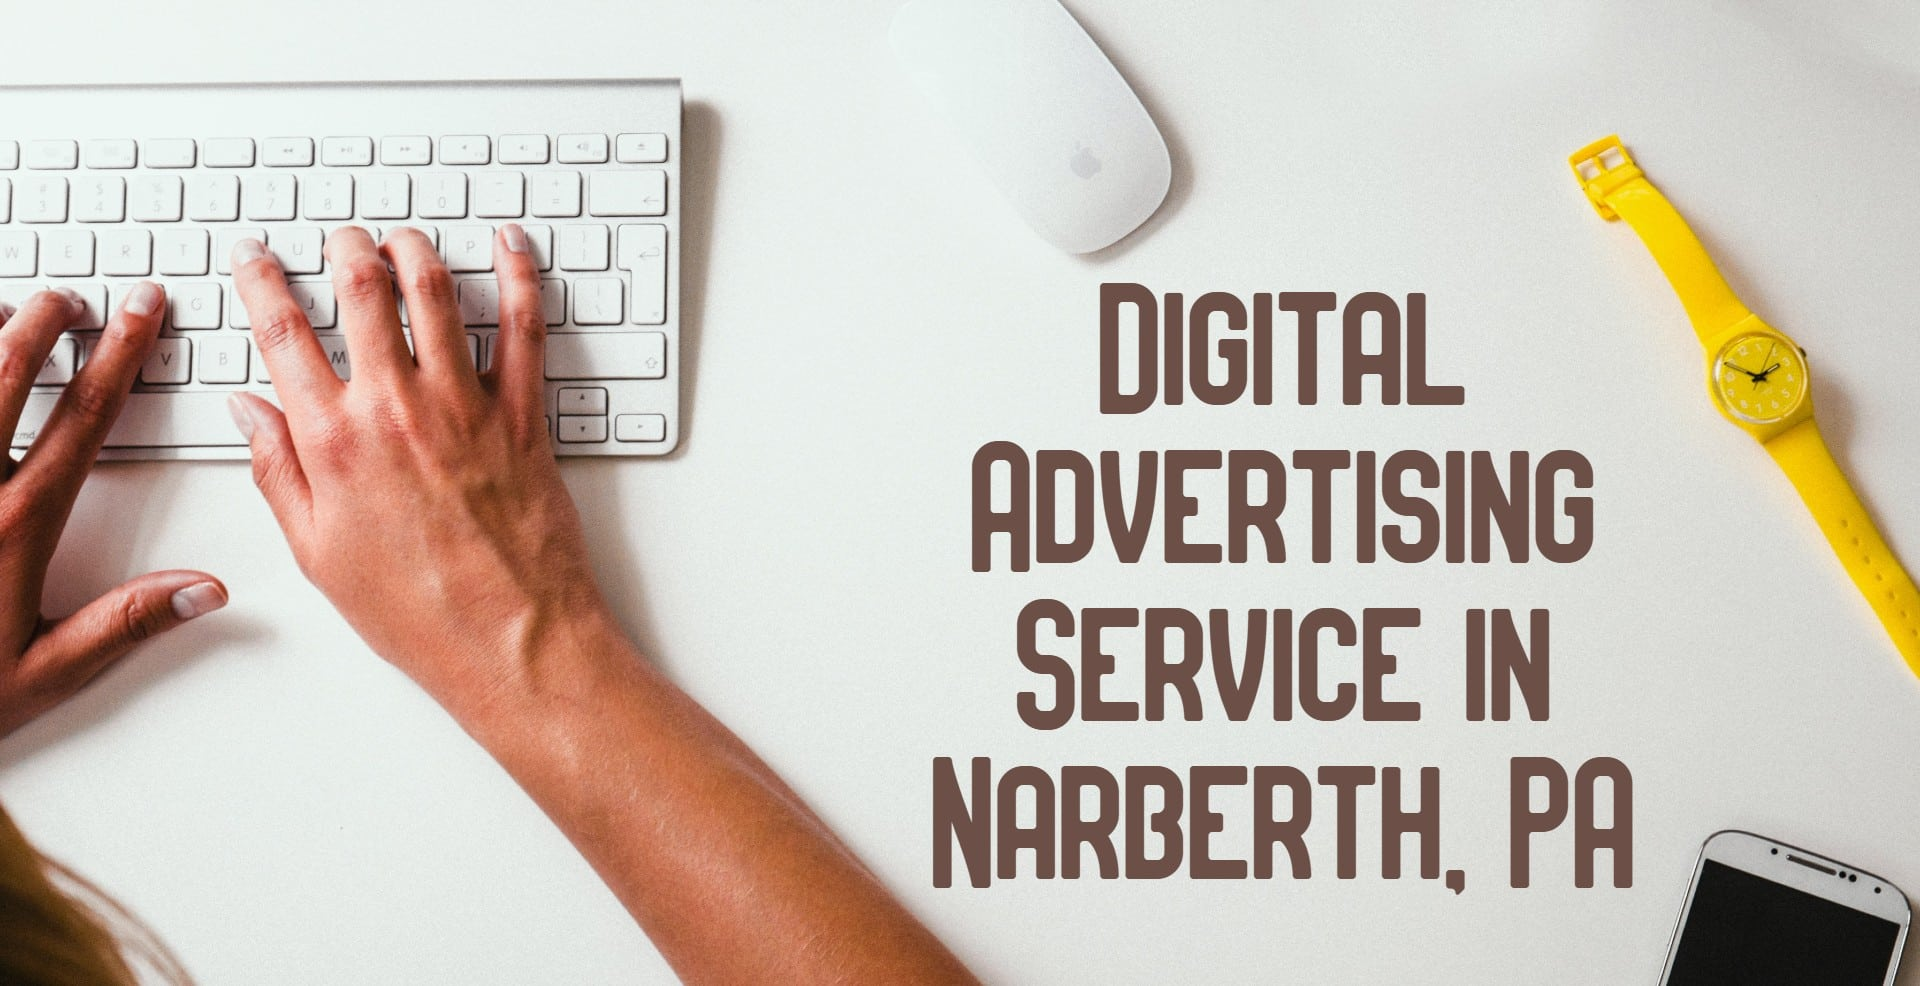 Digital advertising service in Narberth PA